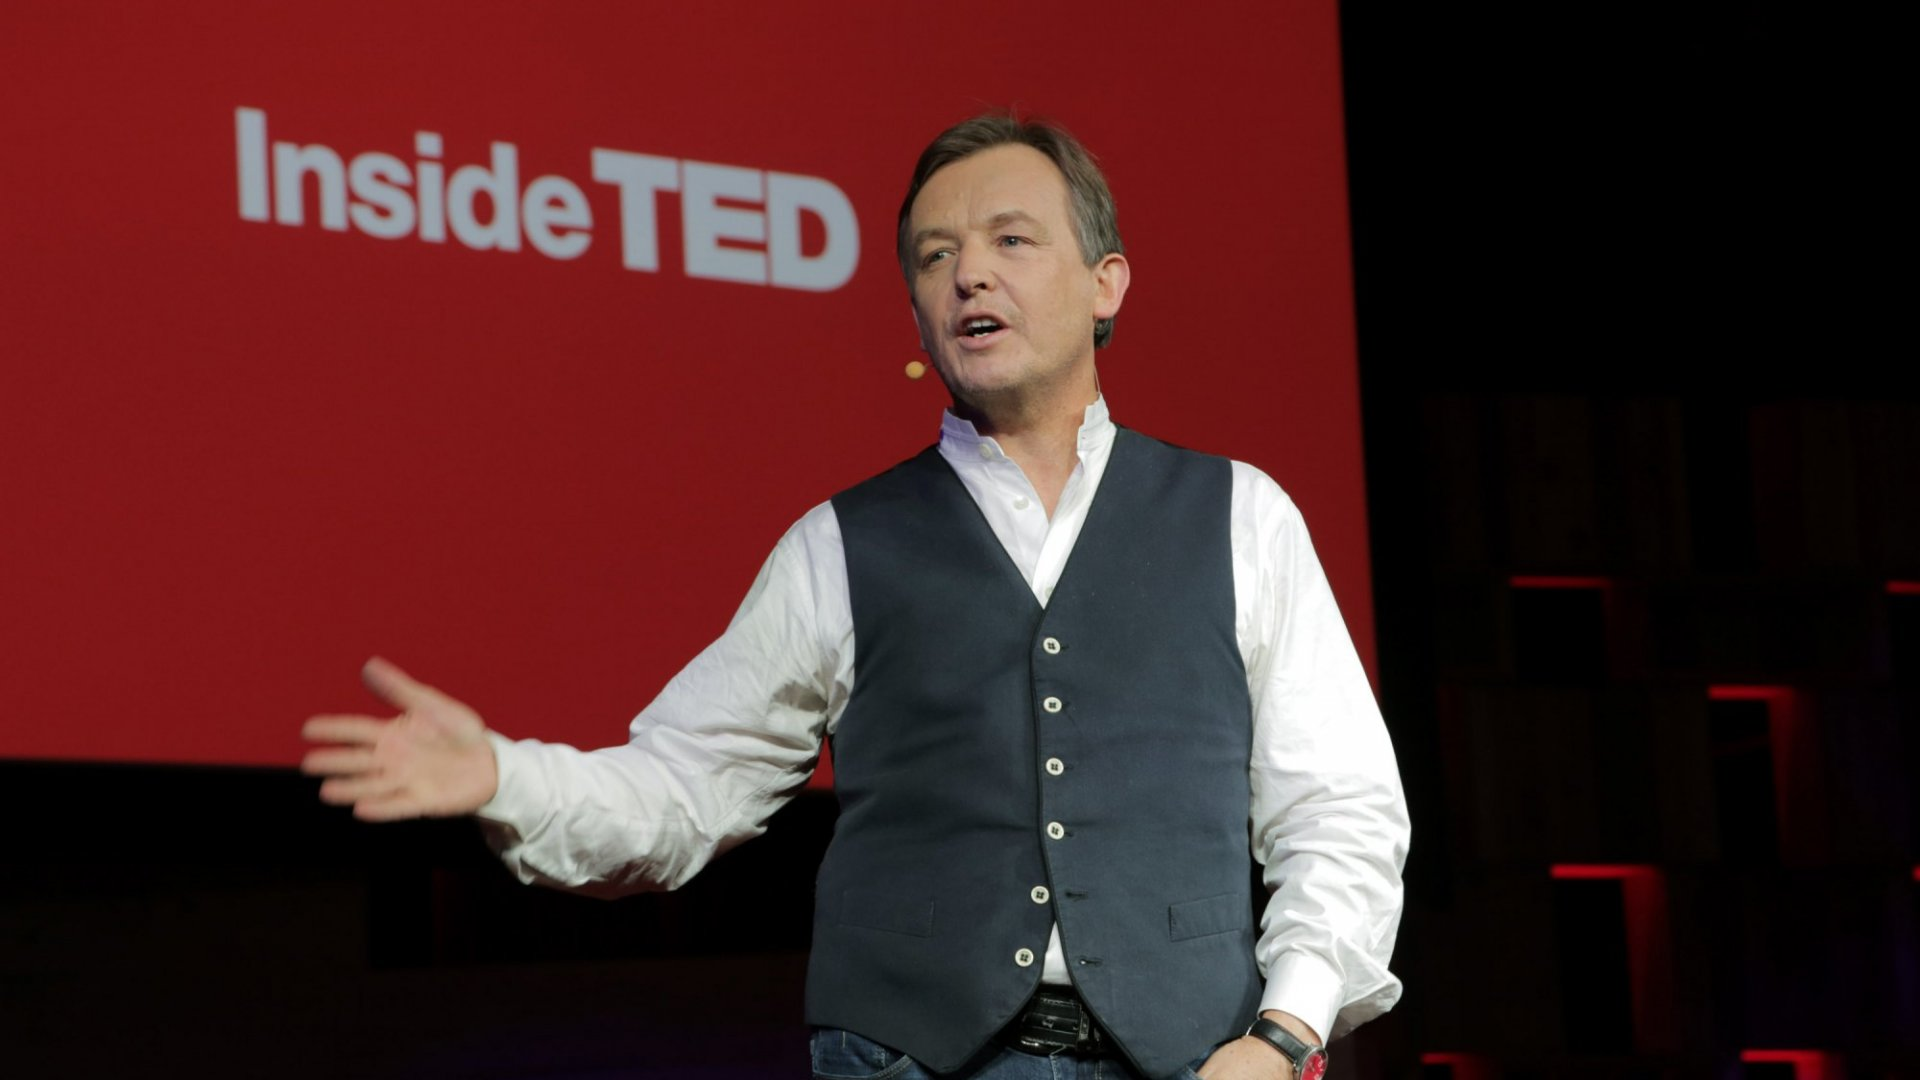 4 Powerful Public Speaking Tips From TED Curator Chris Anderson